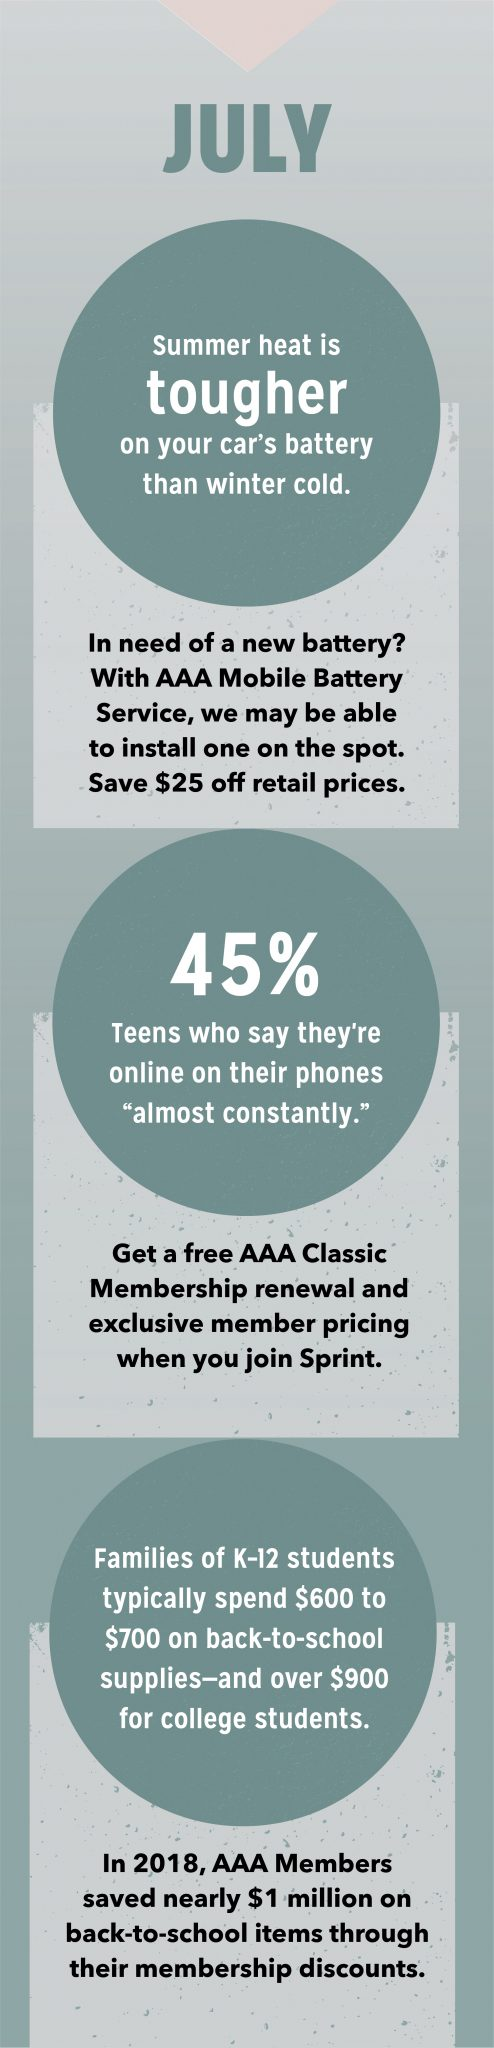 aaa-membership-benefits-july-mobile